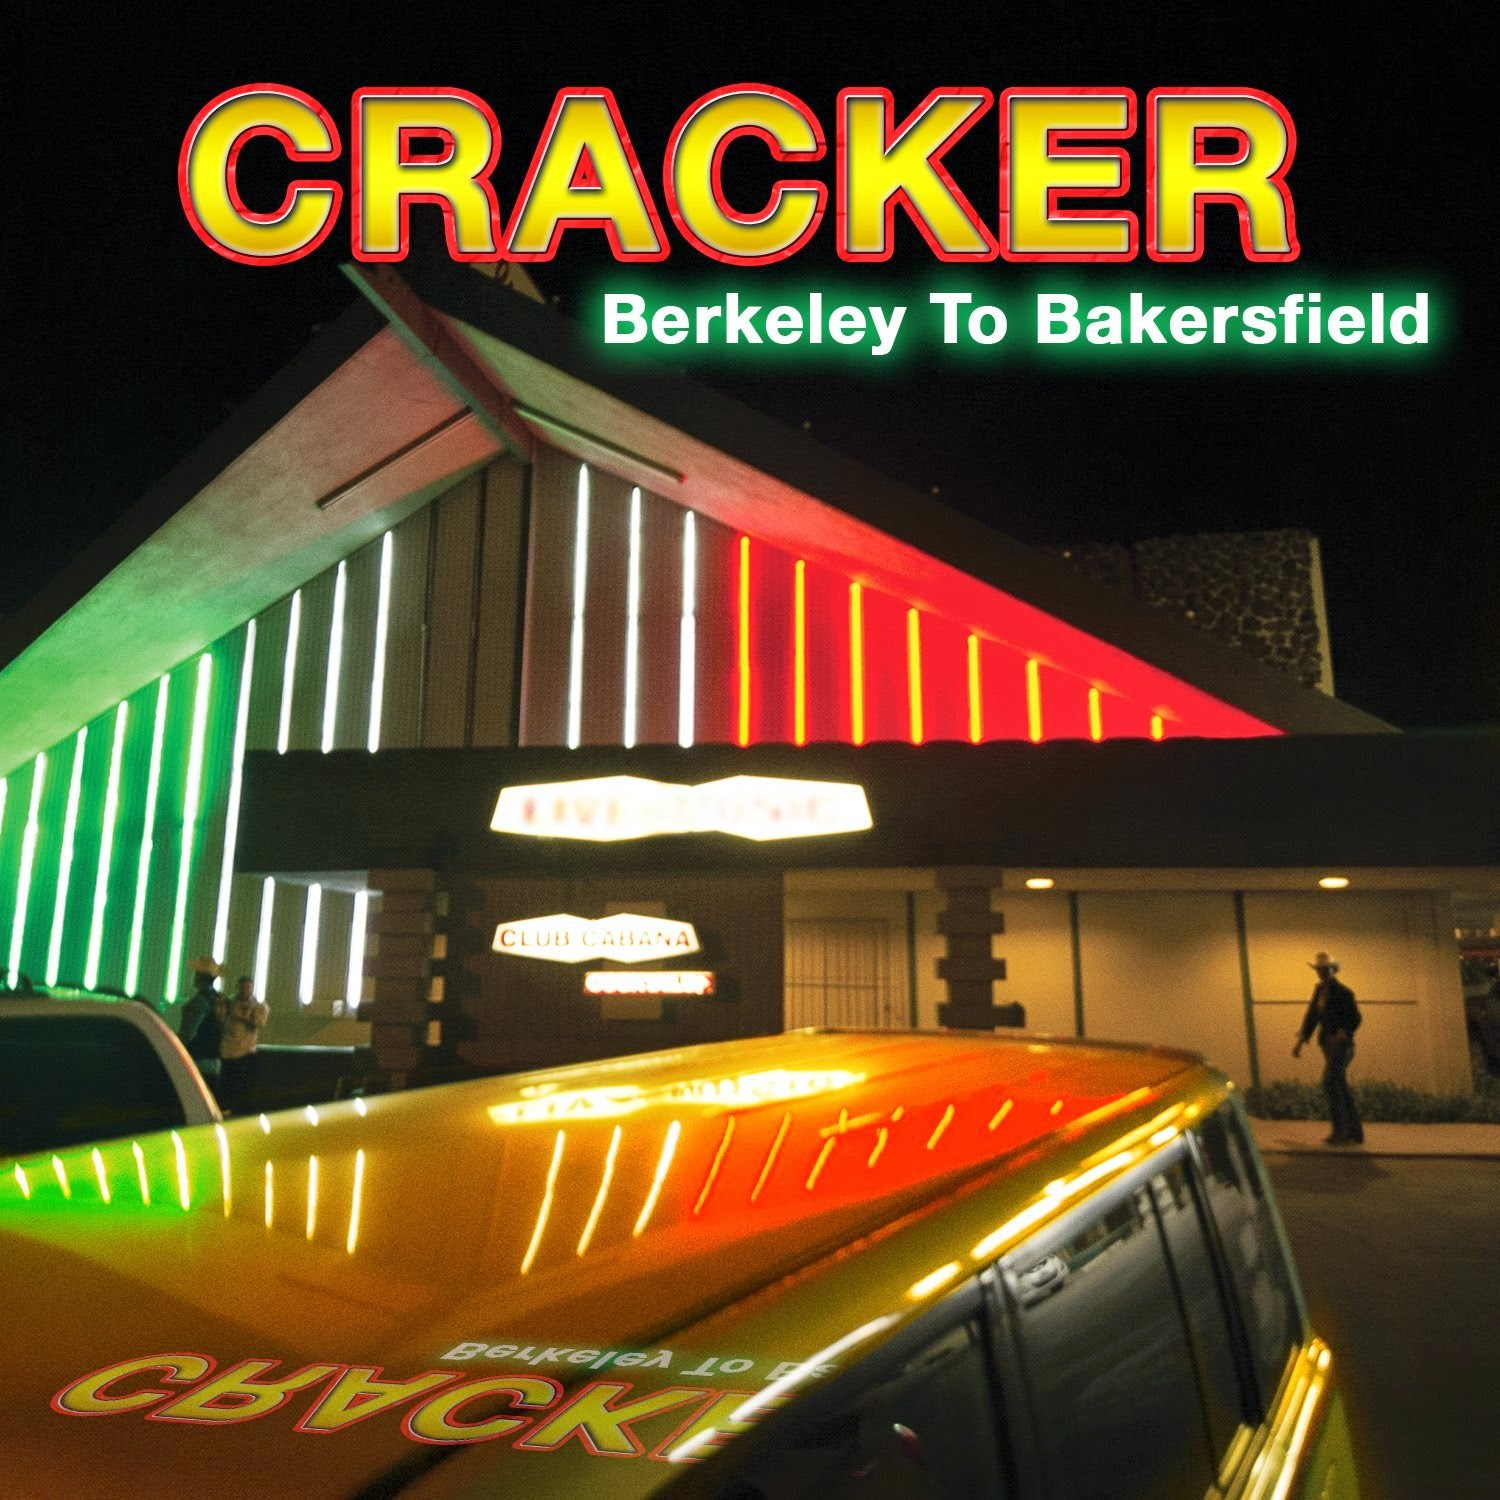 CRACKER - (2014) Berkeley to Bakersfield